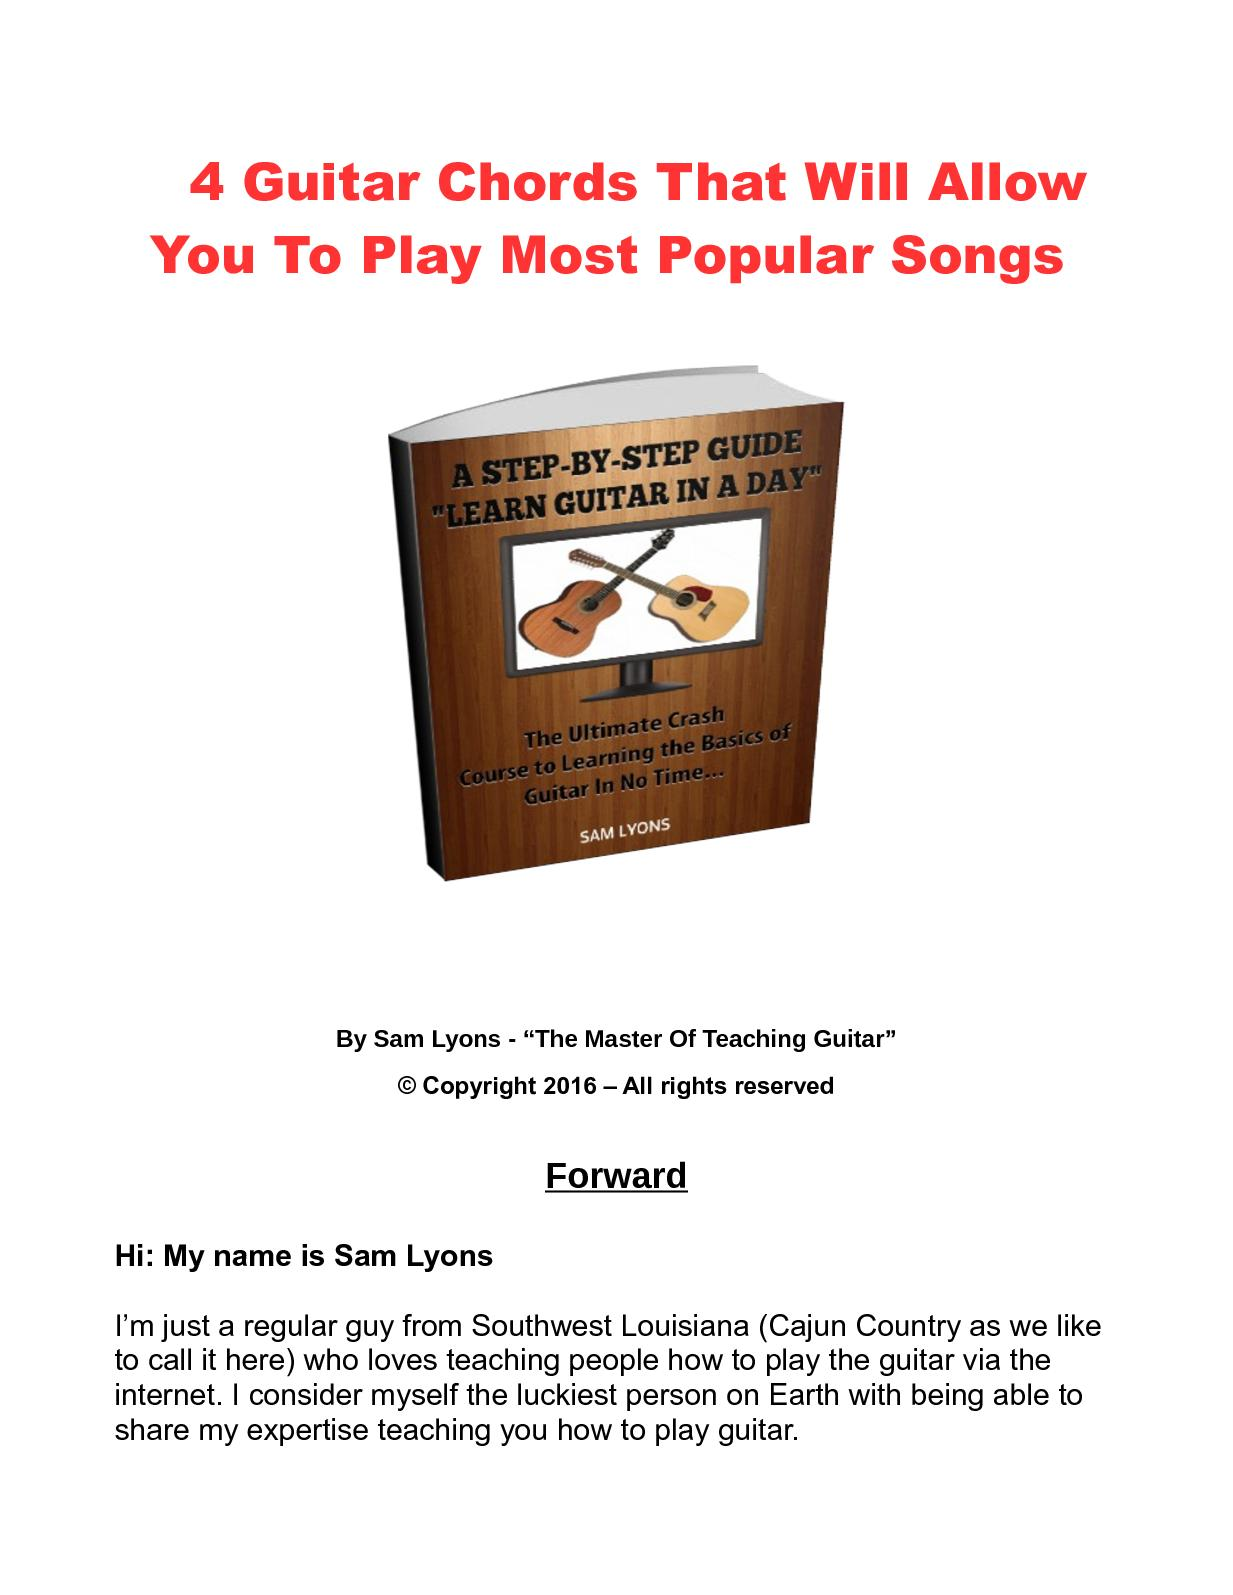 Calamo 4 Guitar Chords That Will Allow You To Play Most Popular Songs